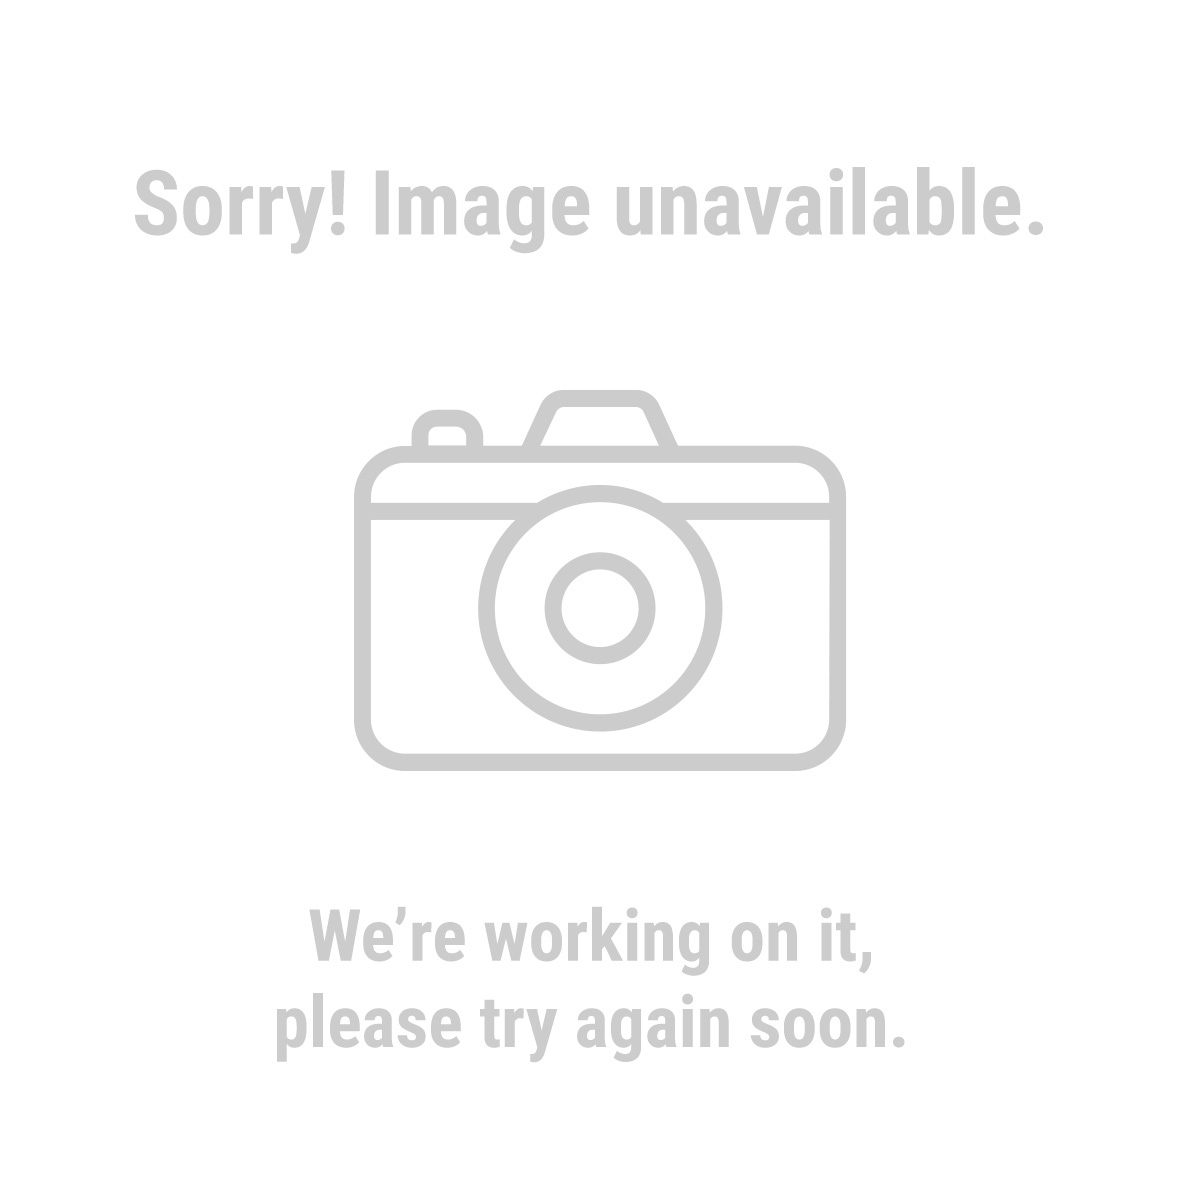 "Central Forge 32997 6"" Cross Slide Vise"